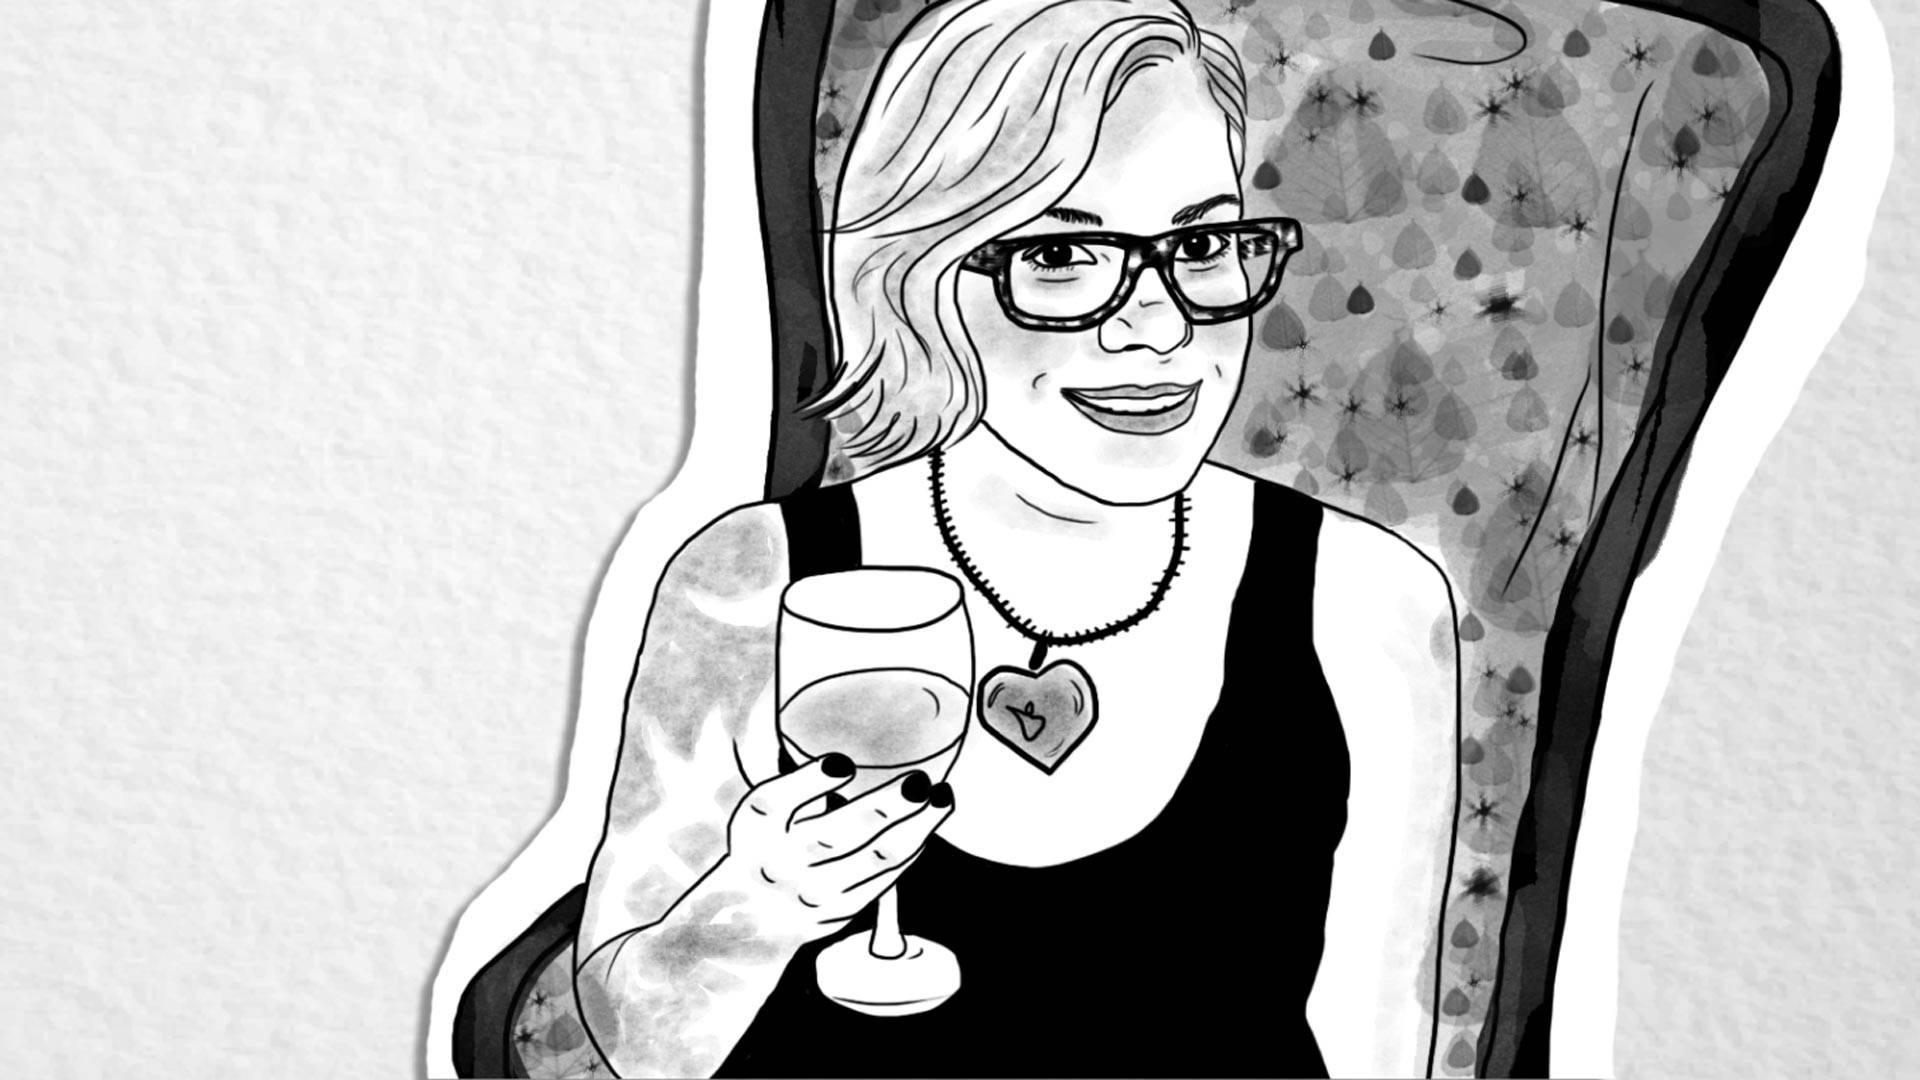 Amanda Allen Kershaw. Illustration by Julianna Cecere/KQED